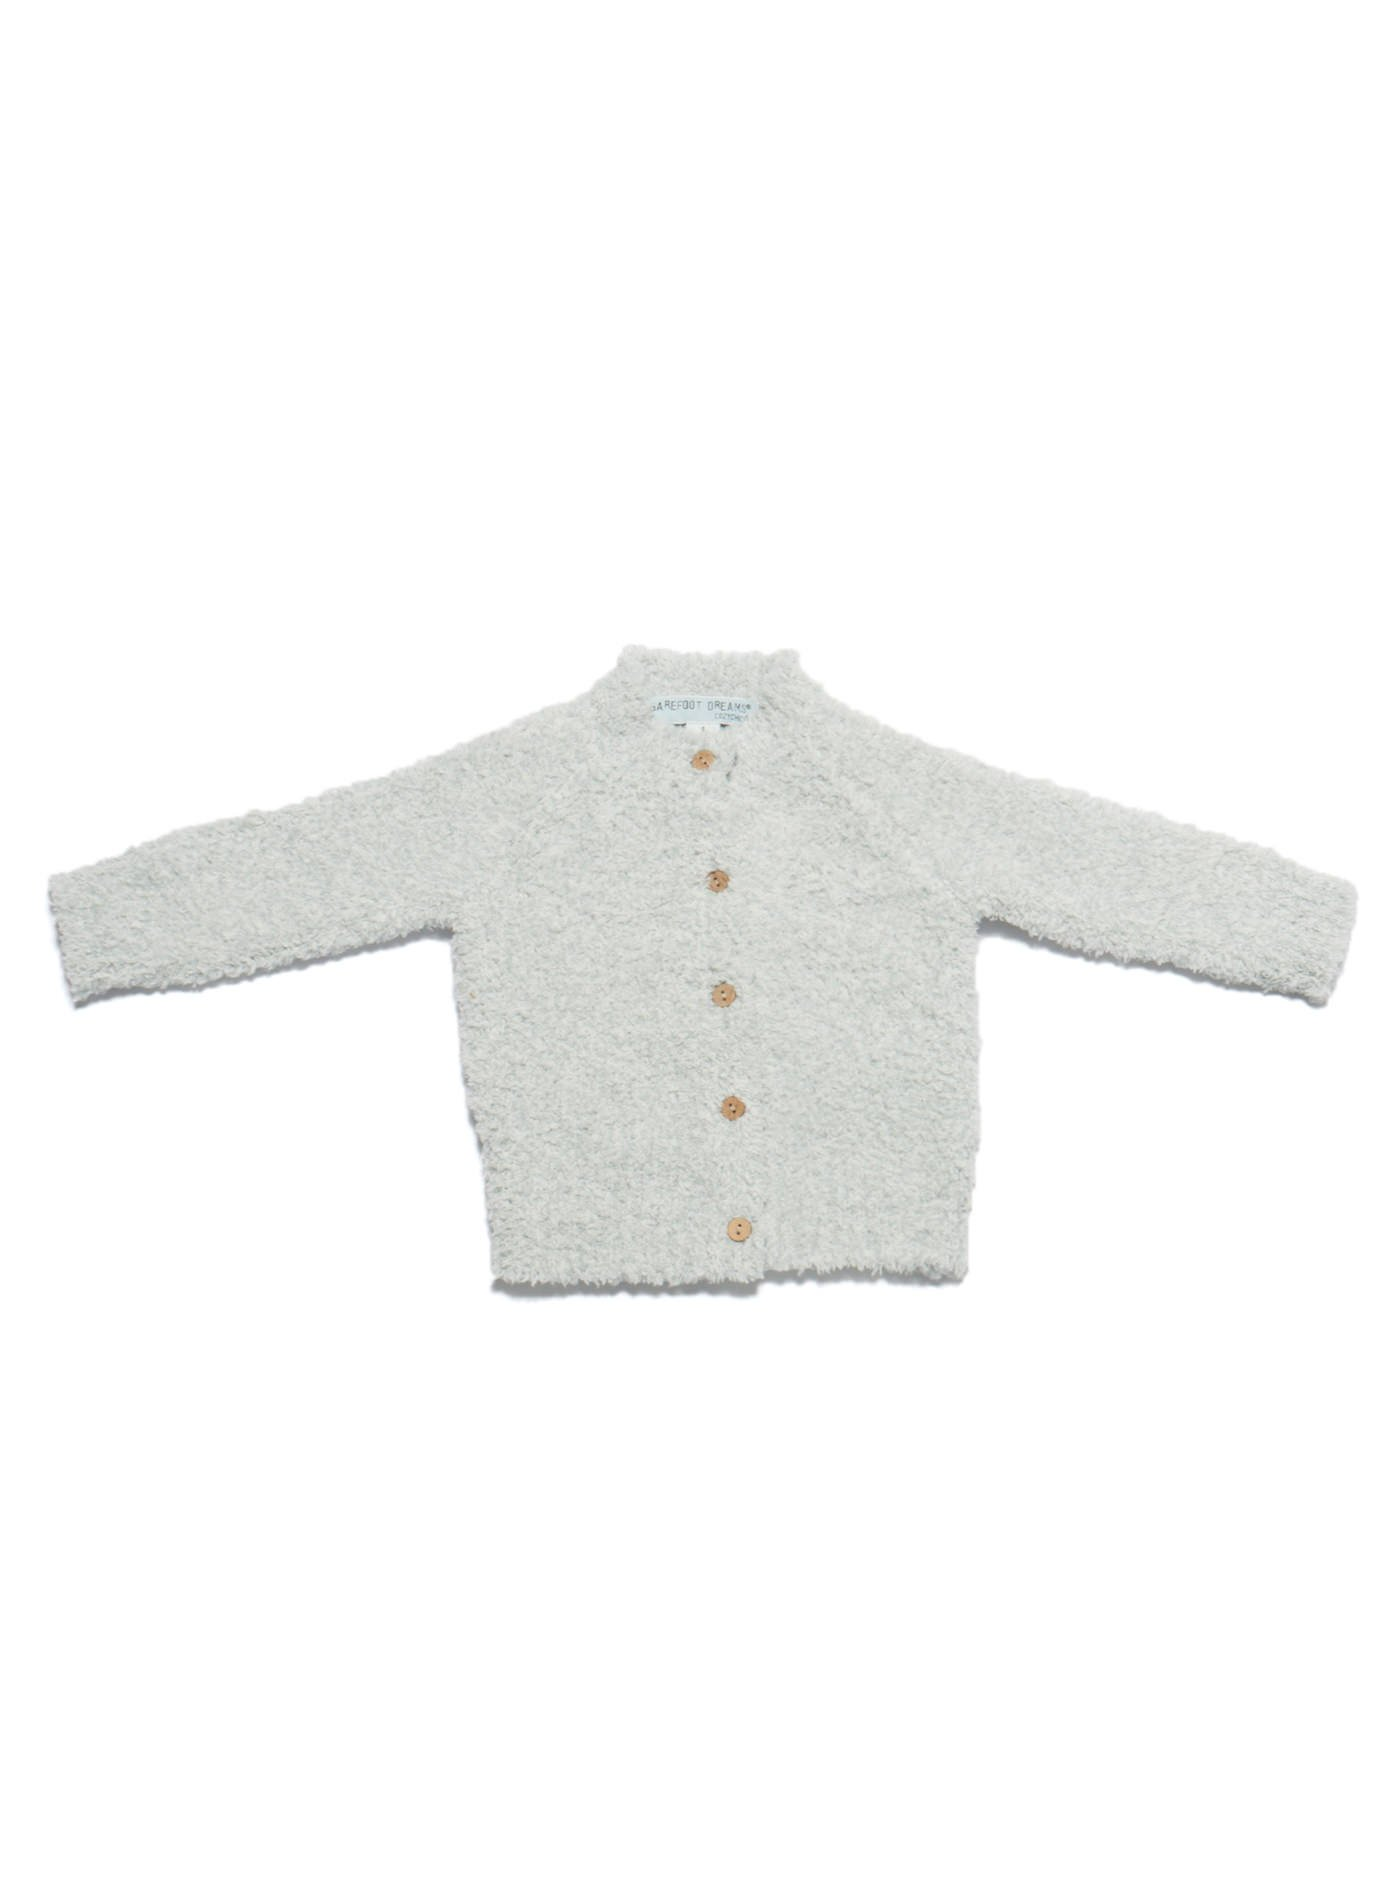 Barefoot Dreams CozyChic Infant Heathered Cardigan Blue/White by Barefoot Dreams